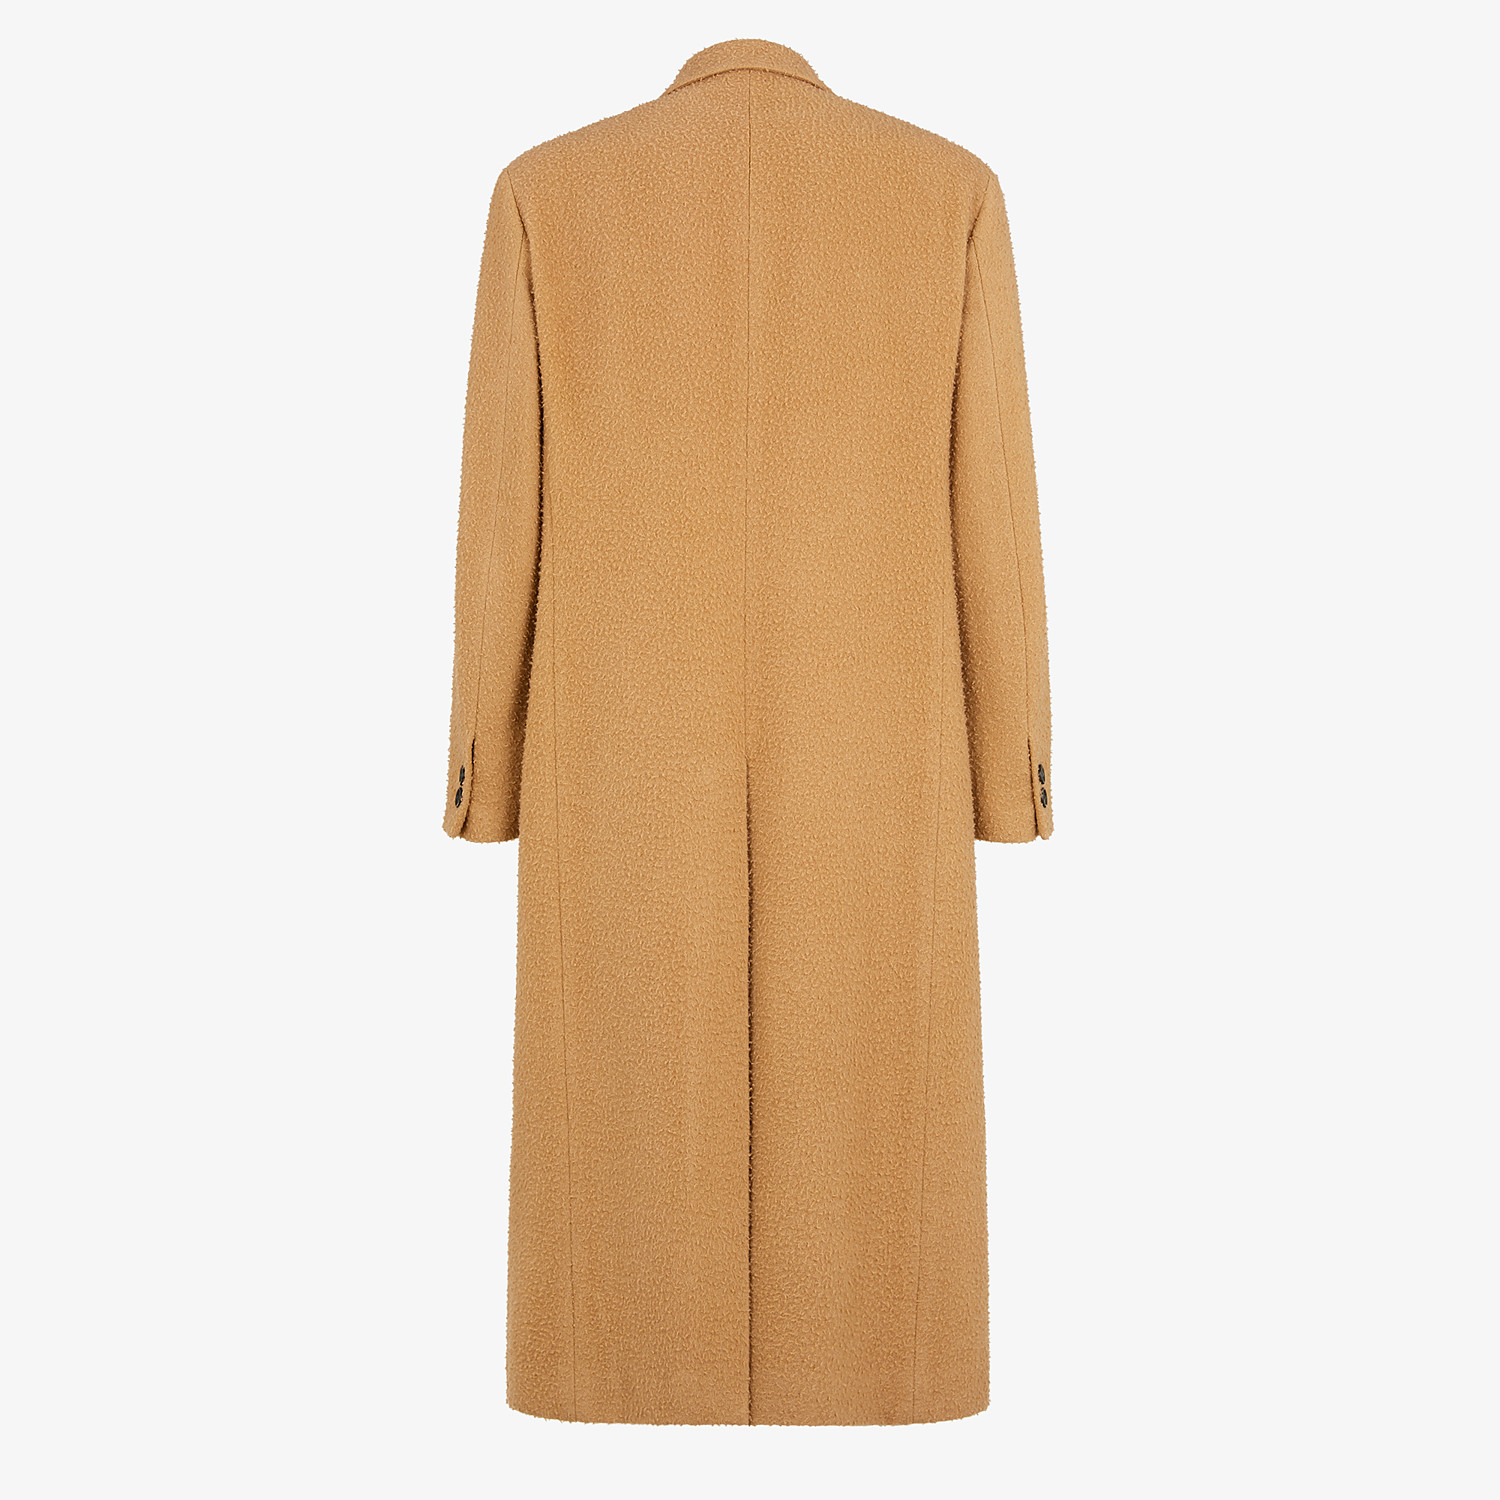 FENDI COAT - Beige wool coat - view 2 detail